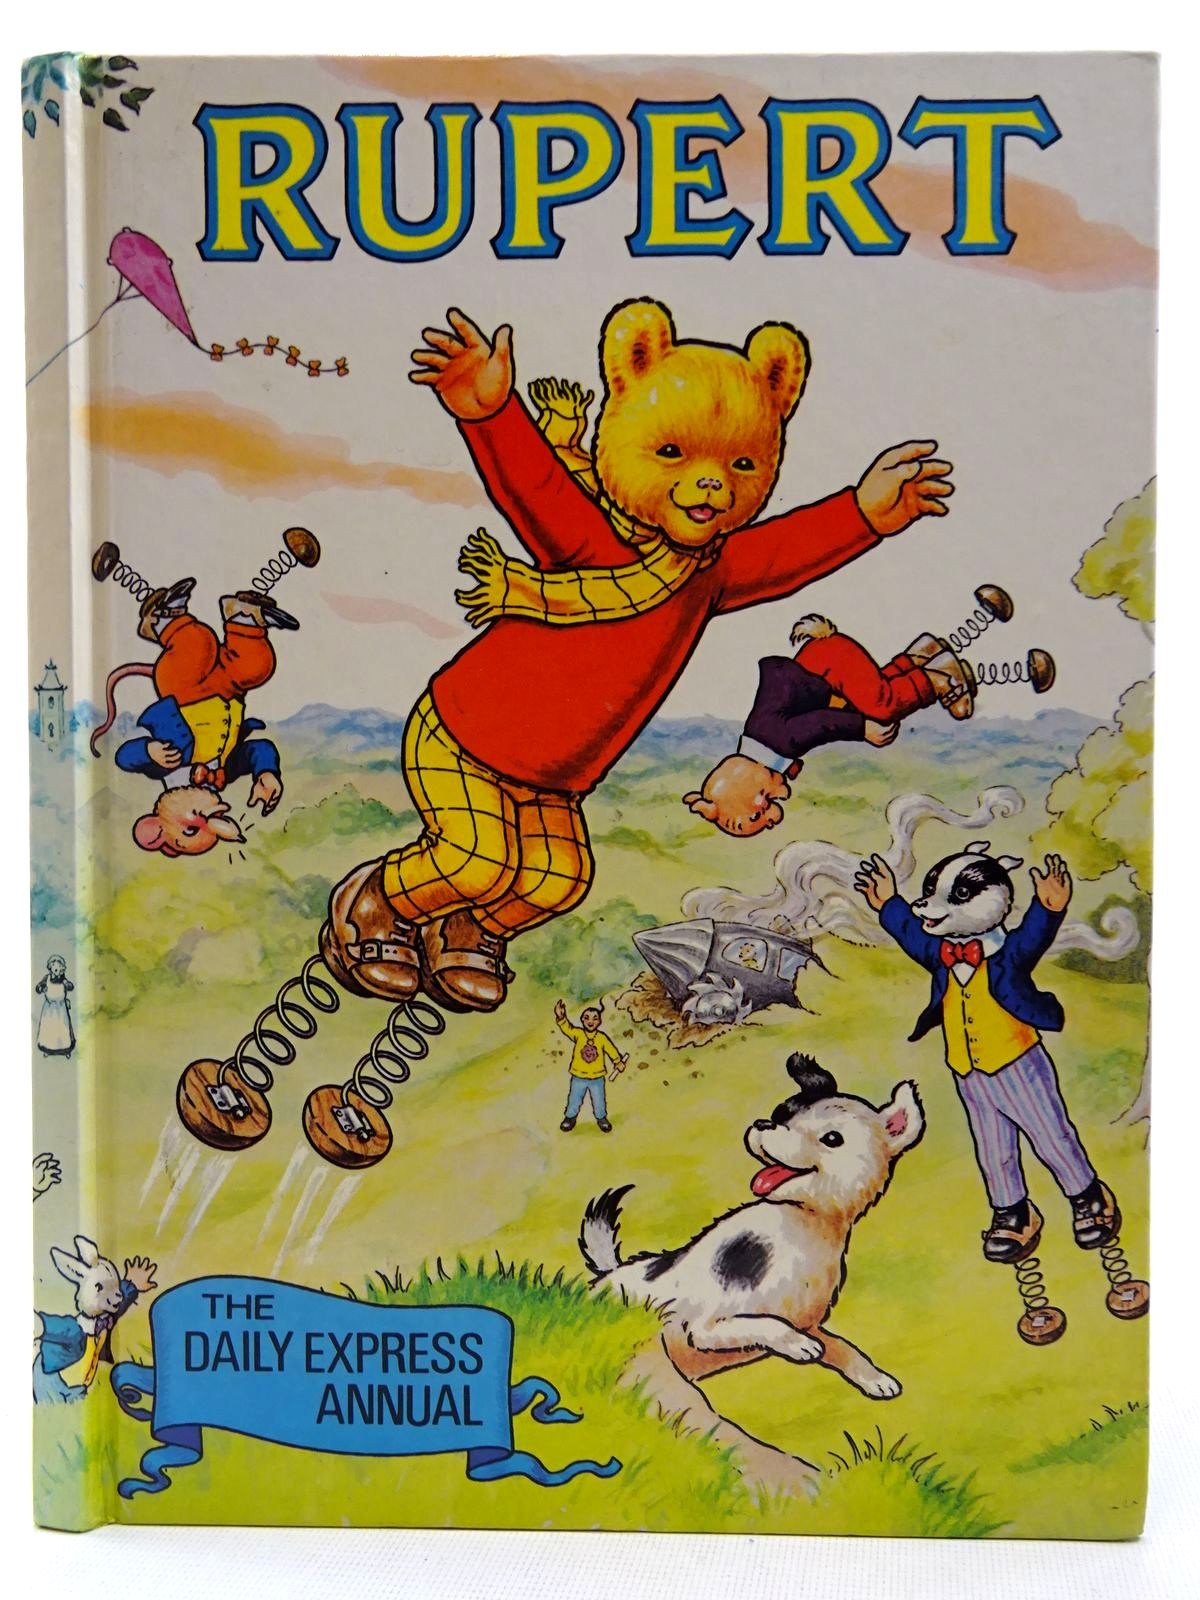 Photo of RUPERT ANNUAL 1982 illustrated by Harrold, John published by Express Newspapers Ltd. (STOCK CODE: 2128691)  for sale by Stella & Rose's Books